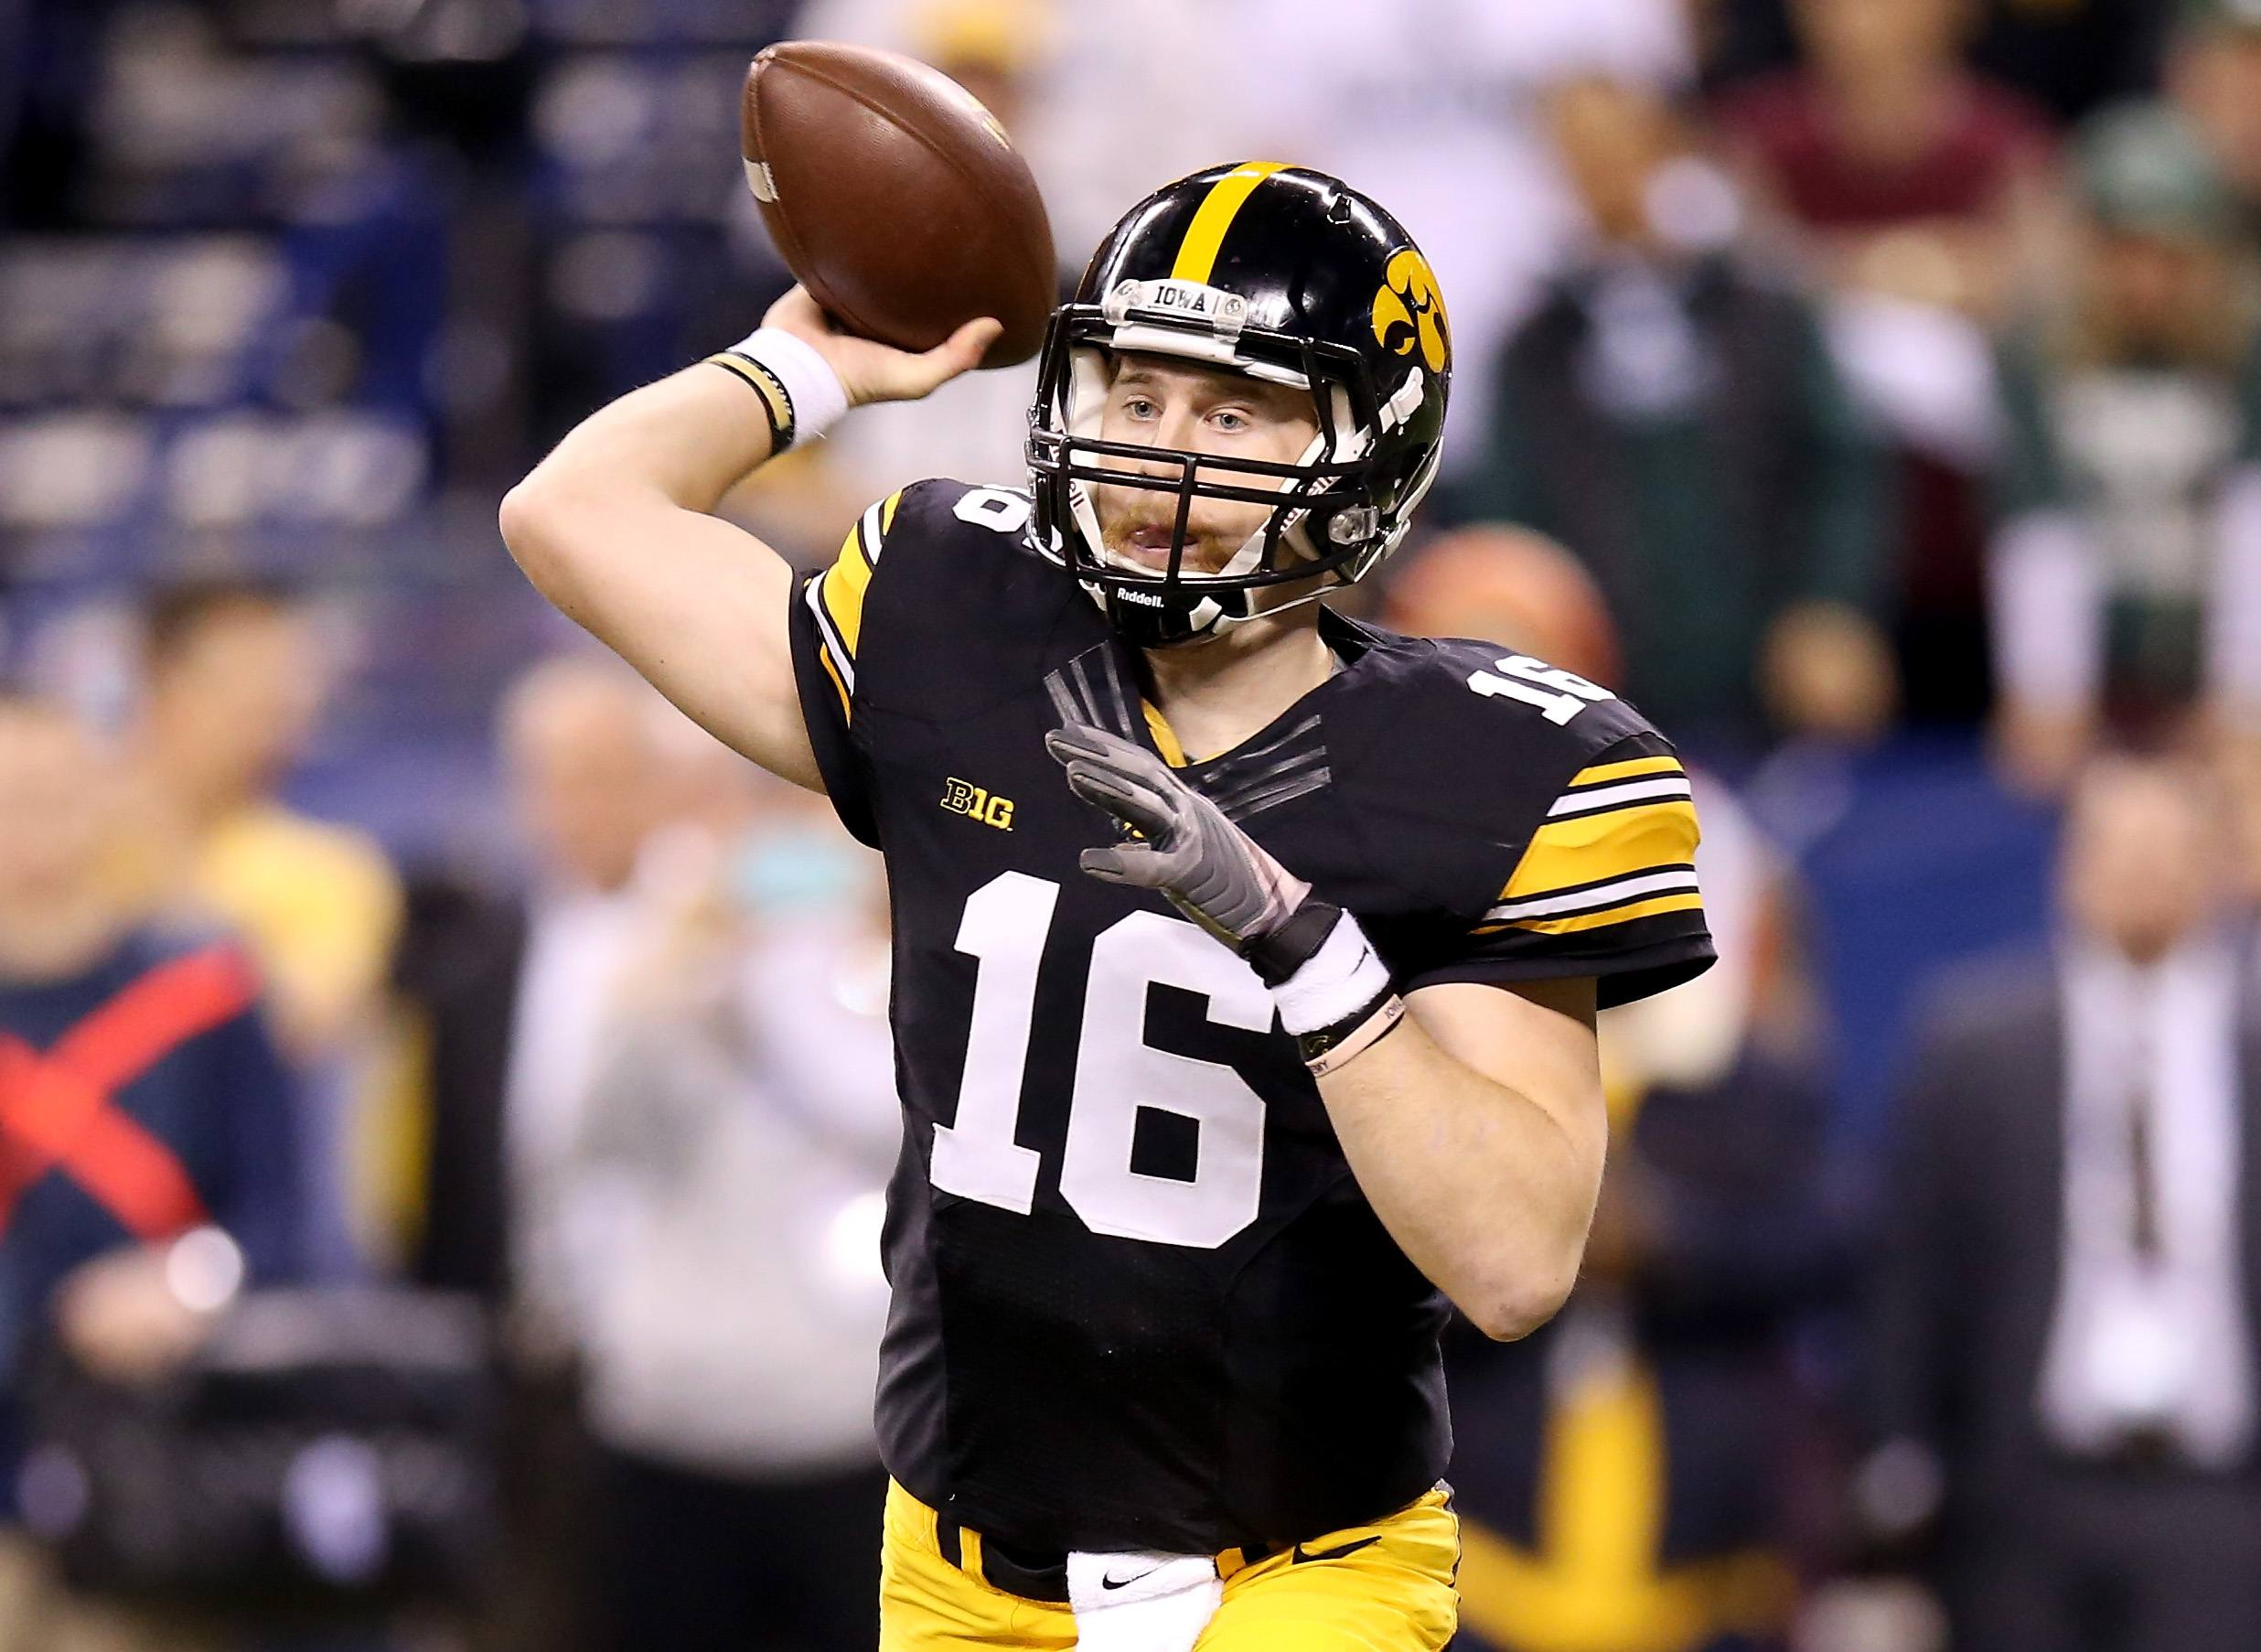 C.J. Beathard attempts a pass during a game in 2016.